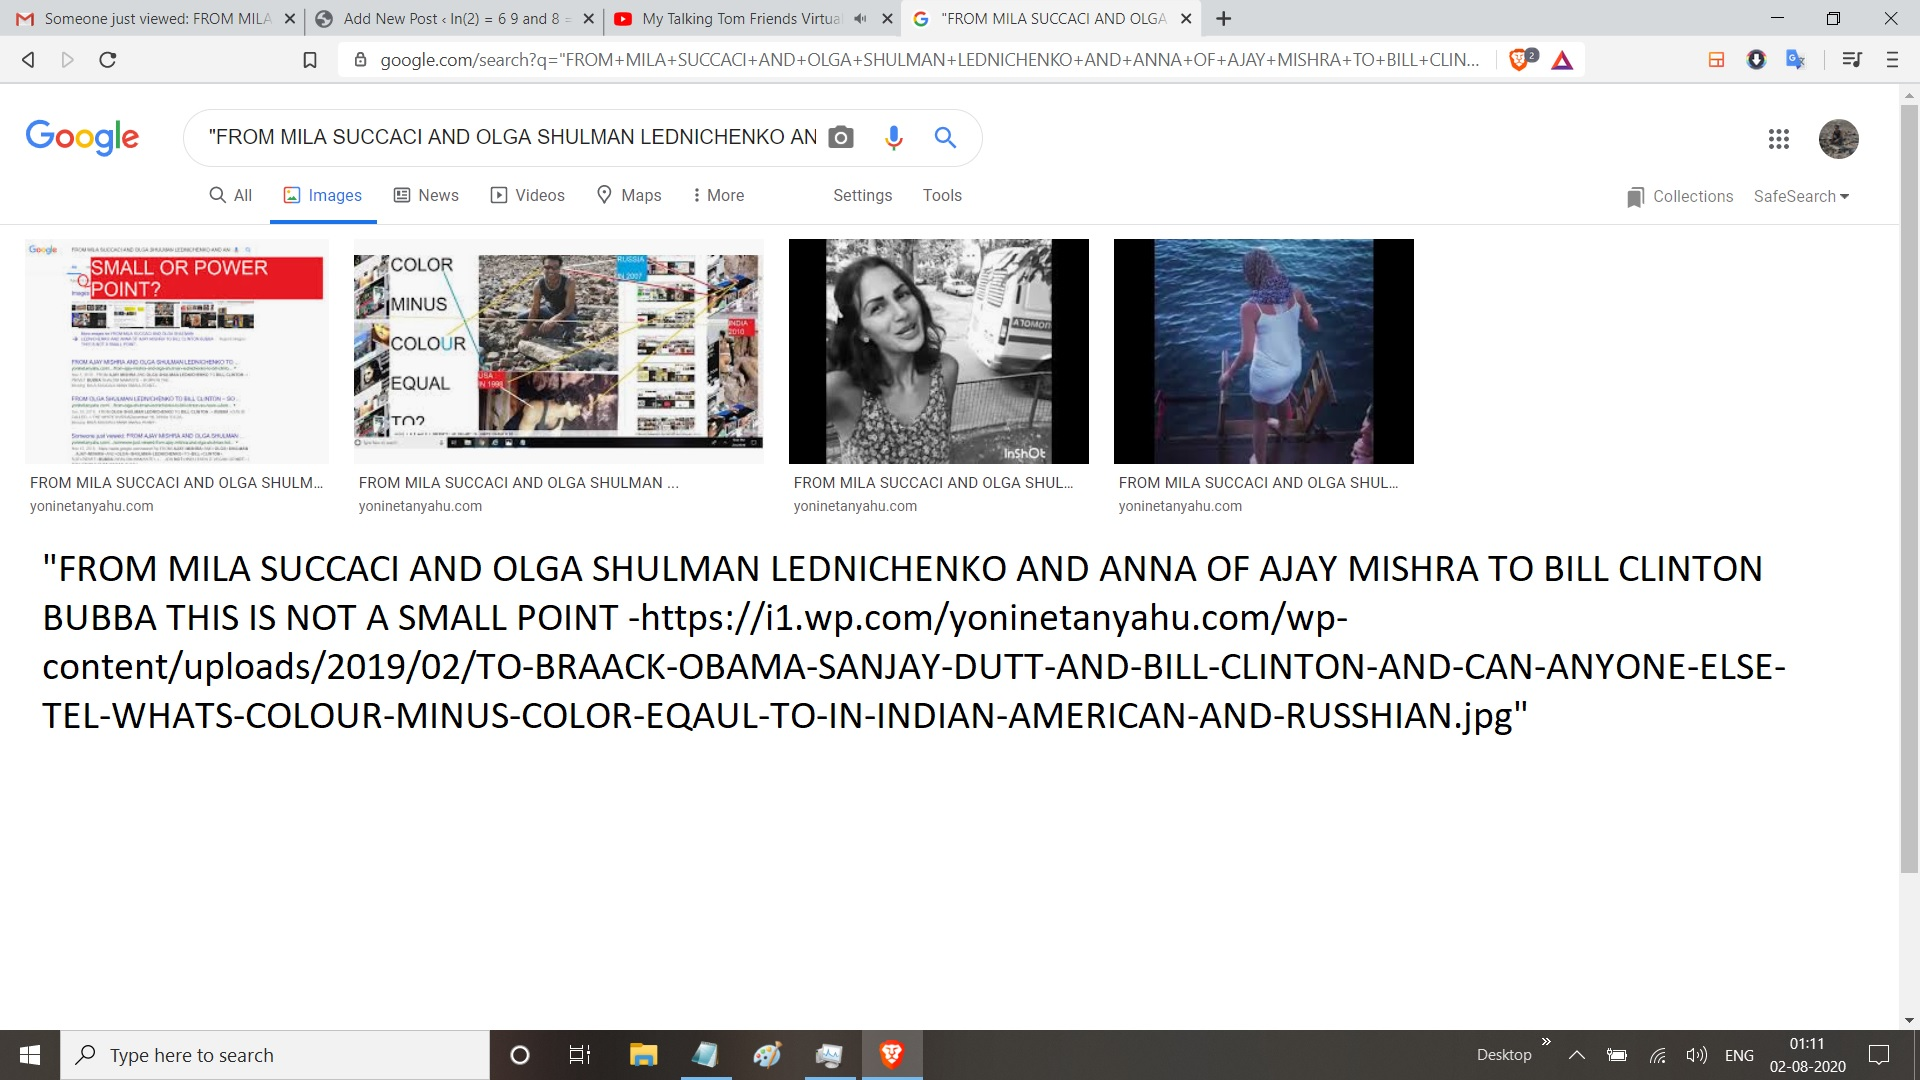 FROM MILA SUCCACI AND OLGA SHULMAN LEDNICHENKO AND ANNA OF AJAY MISHRA TO BILL CLINTON BUBBA THIS IS NOT A SMALL POINT -https://i1.wp.com/yoninetanyahu.com/wp-content/uploads/2019/02/TO-BRAACK-OBAMA-SANJAY-DUTT-AND-BILL-CLINTON-AND-CAN-ANYONE-ELSE-TEL-WHATS-COLOUR-MINUS-COLOR-EQAUL-TO-IN-INDIAN-AMERICAN-AND-RUSSHIAN.jpG